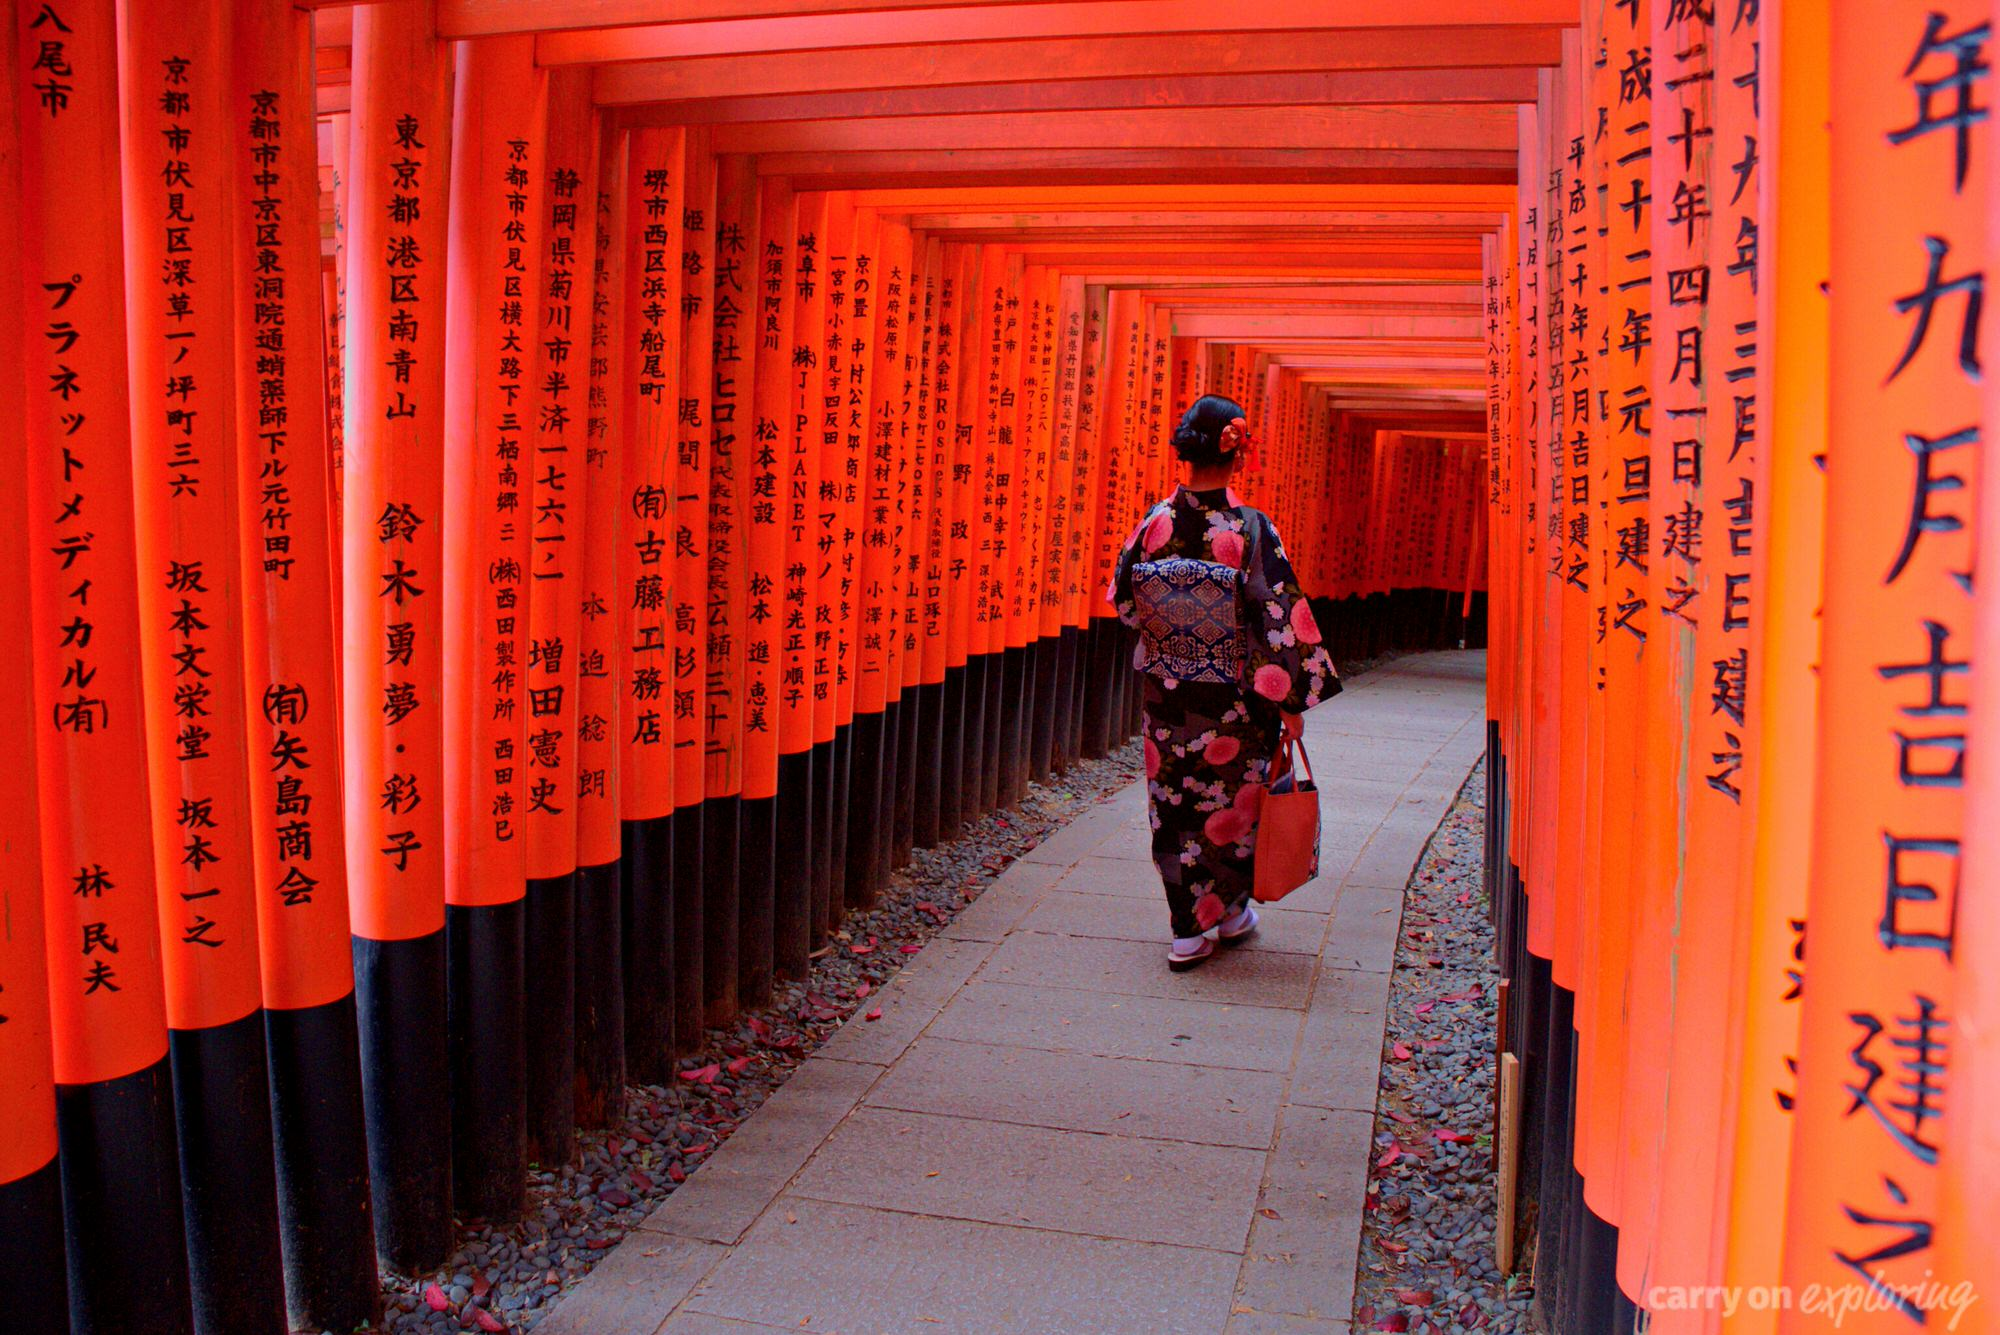 A geisha walking down a path in Kyoto, Japan.